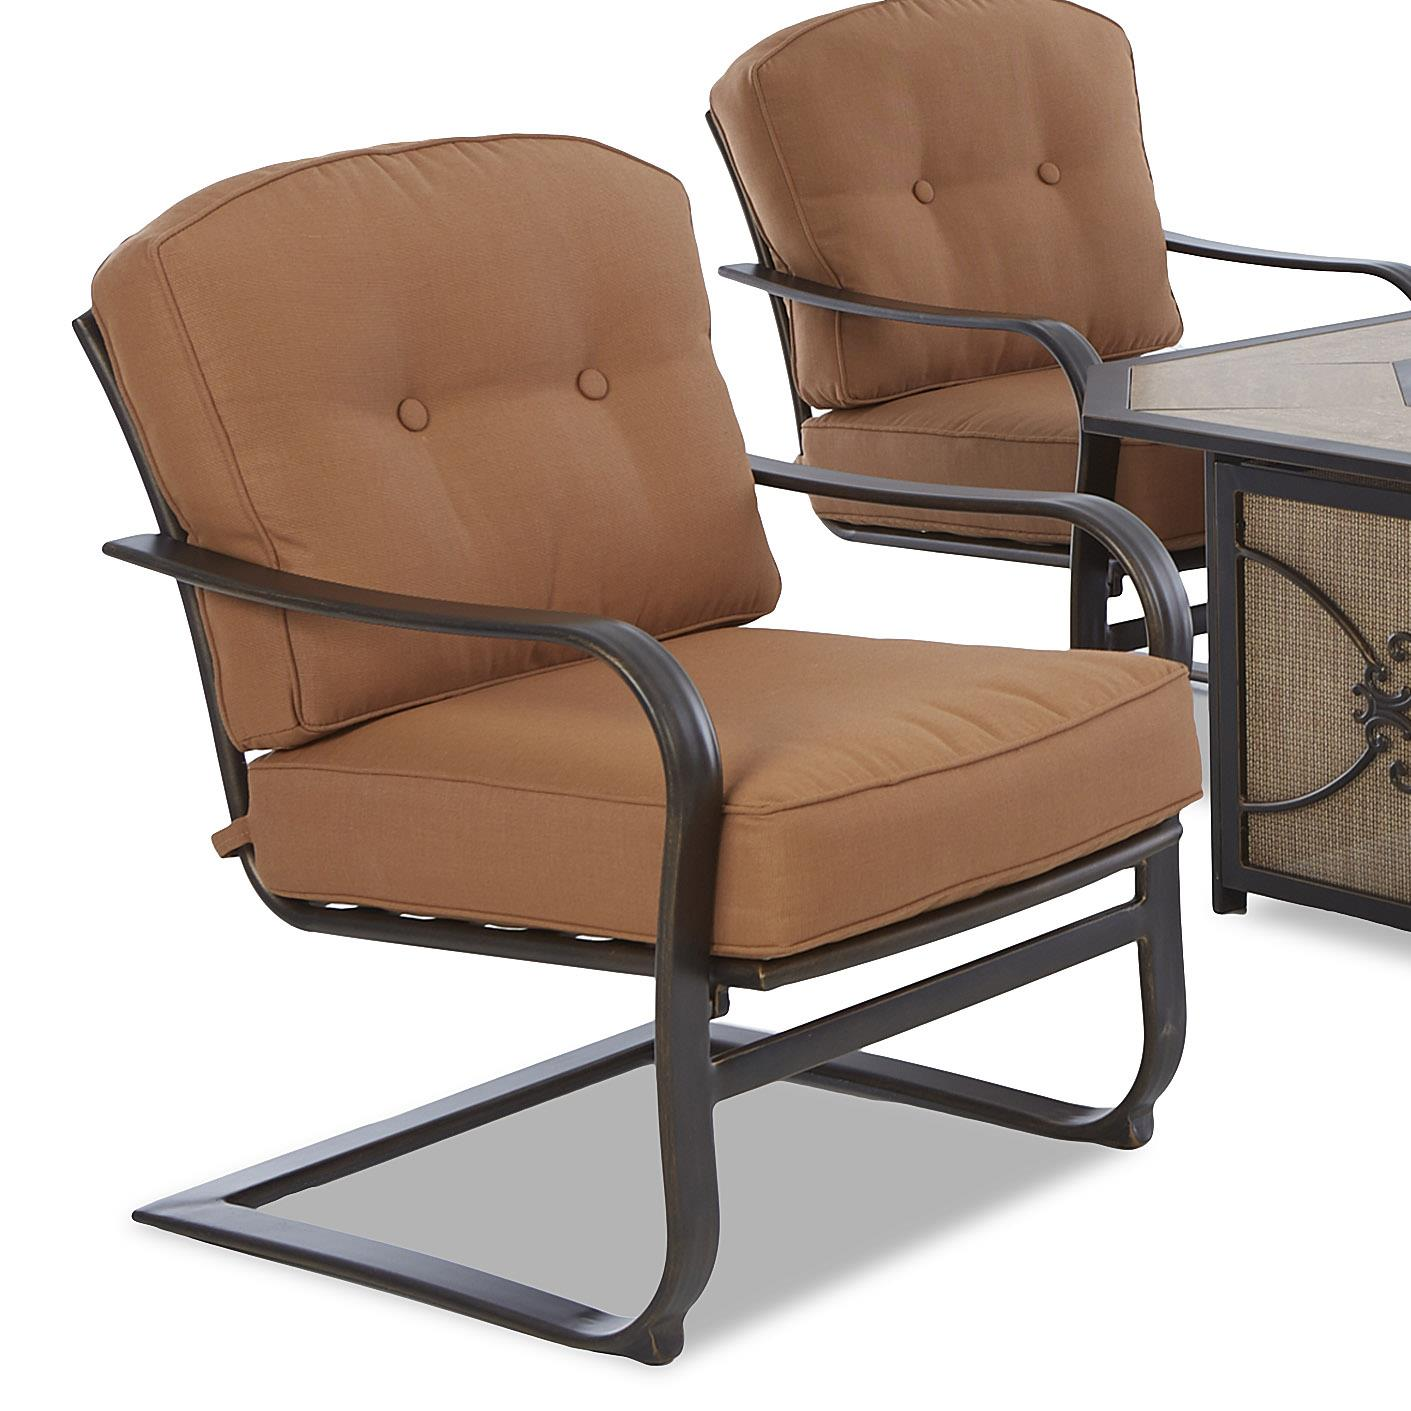 Marvelous ... New Hudson Bay Outdoor Patio Furniture Part 12